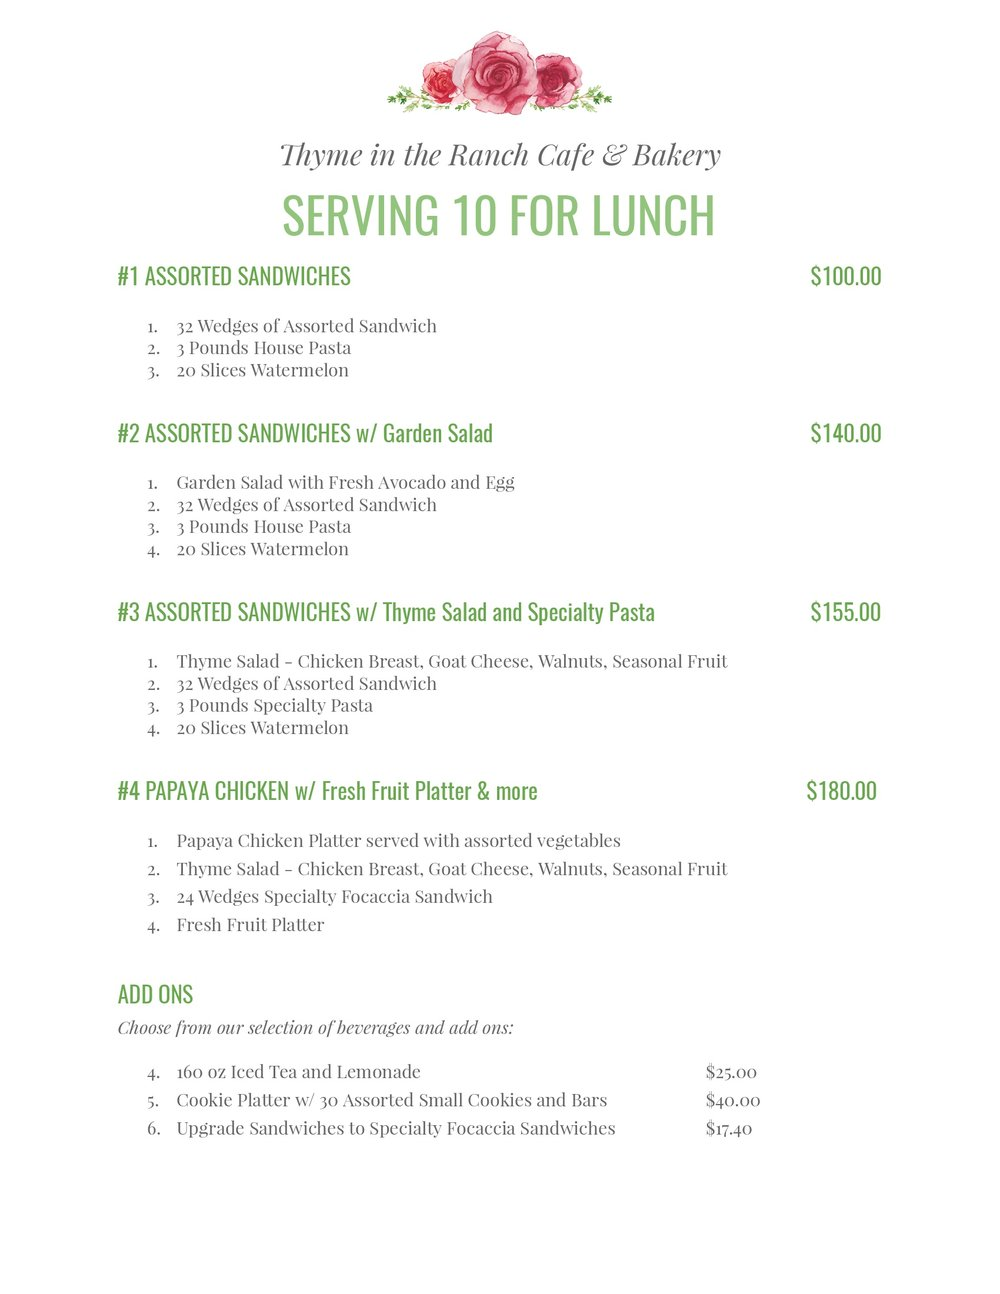 Lunch Catering Menu for 10 people